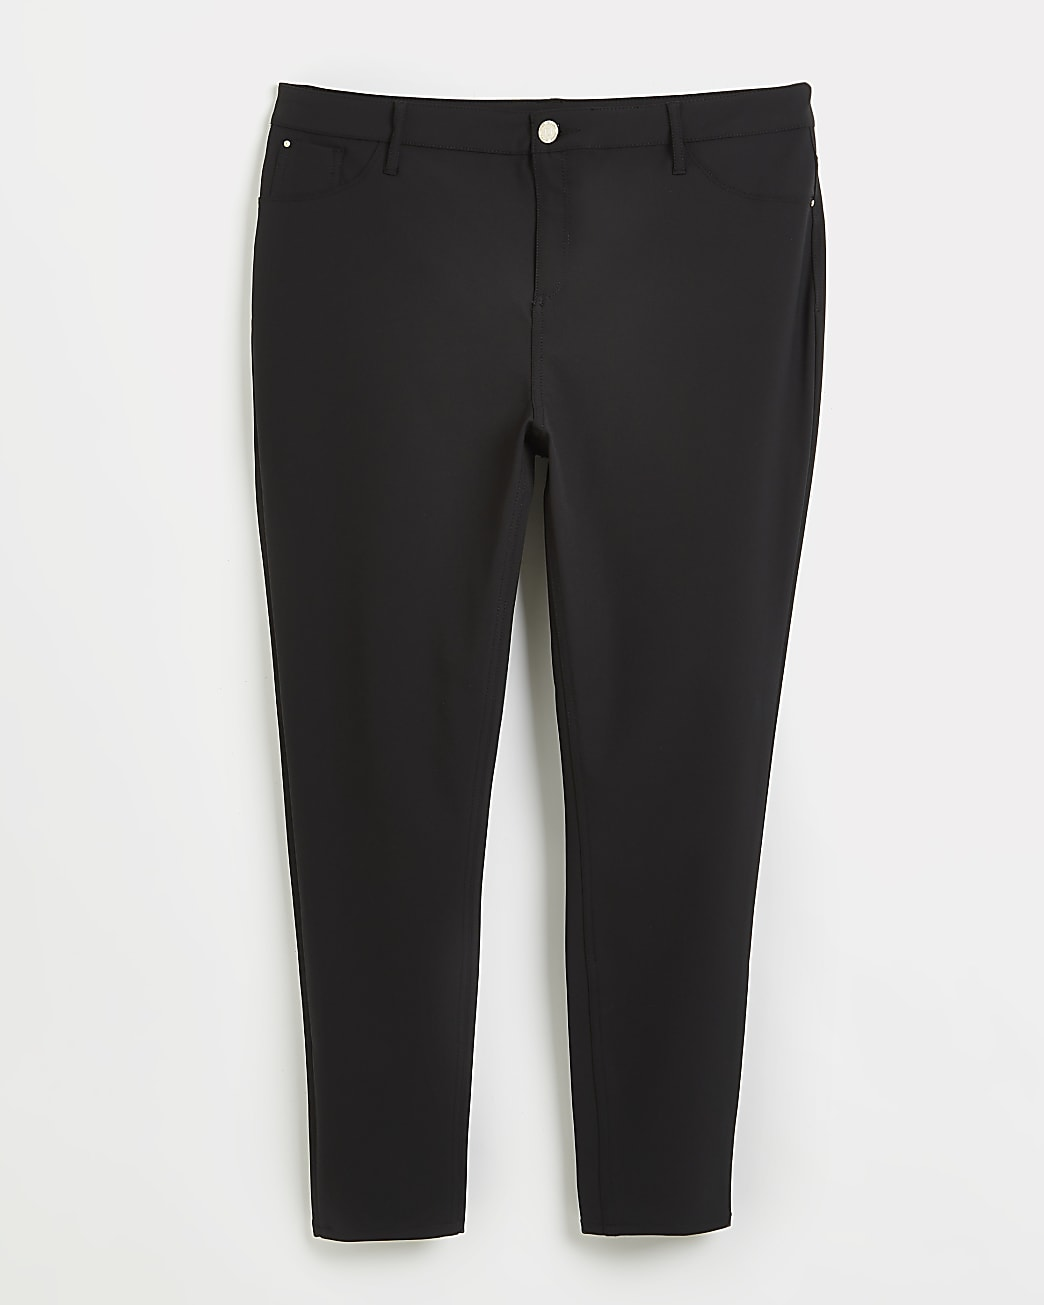 Plus black Molly high waisted trousers